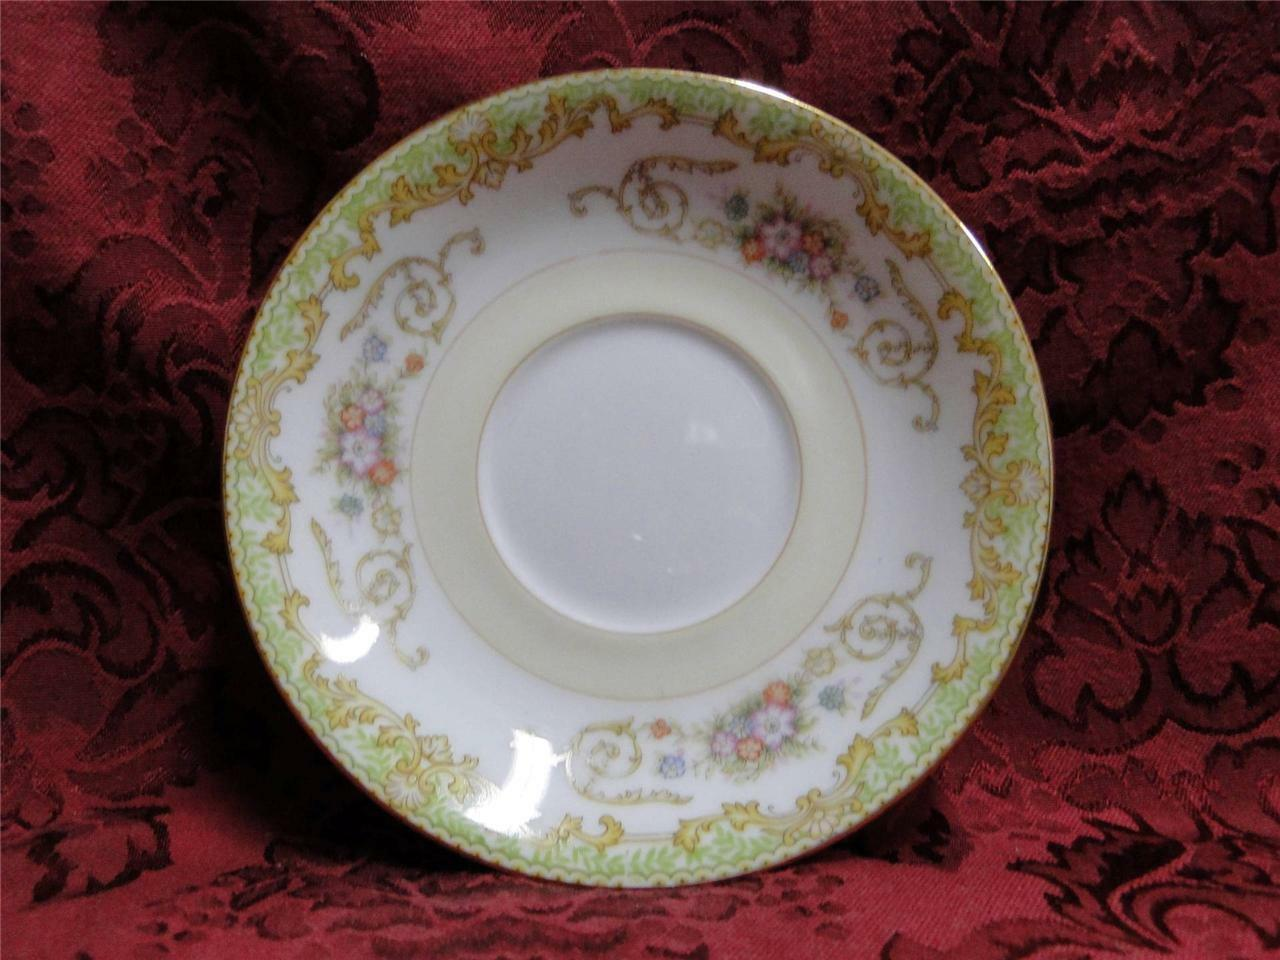 Noritake Green Edge, Swirls & Flowers on White: Saucer (s), Cup Not Included